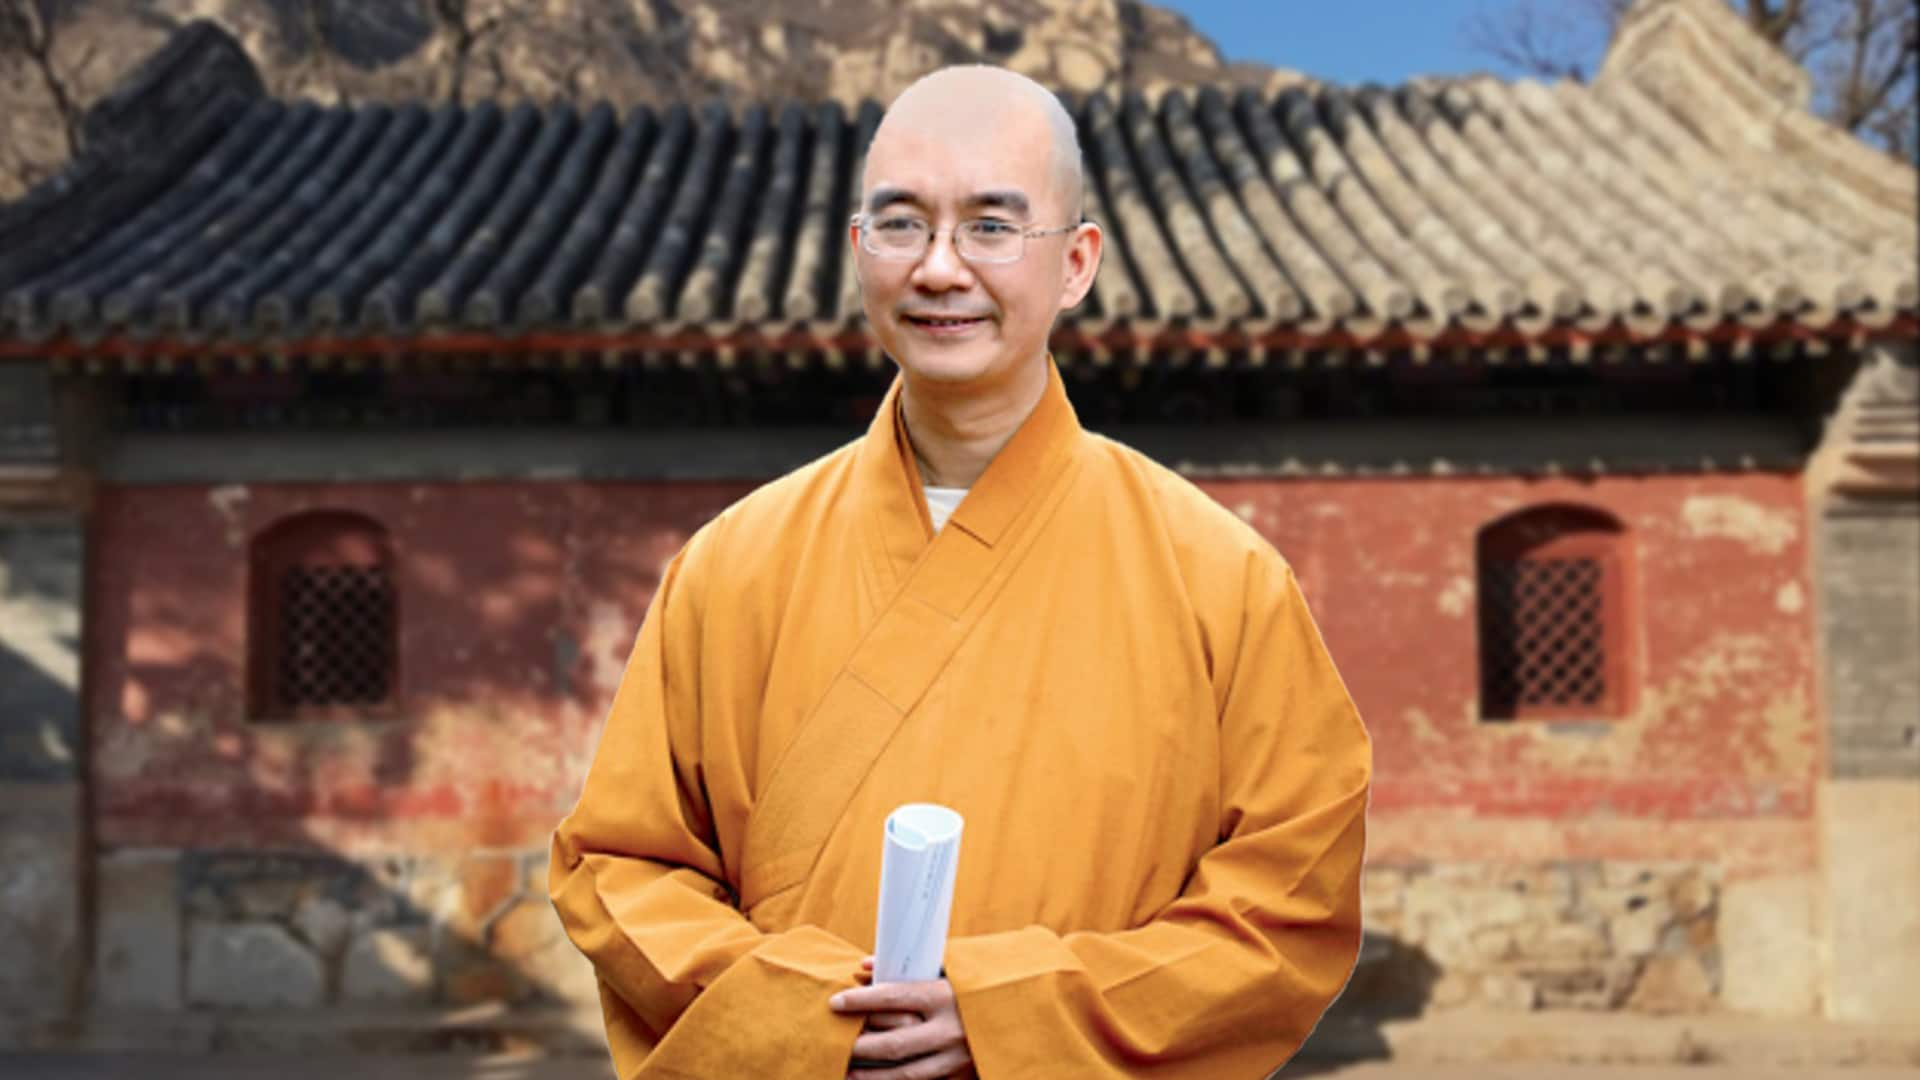 Chinese Buddhist abbot Xuecheng accused of sexual misconduct